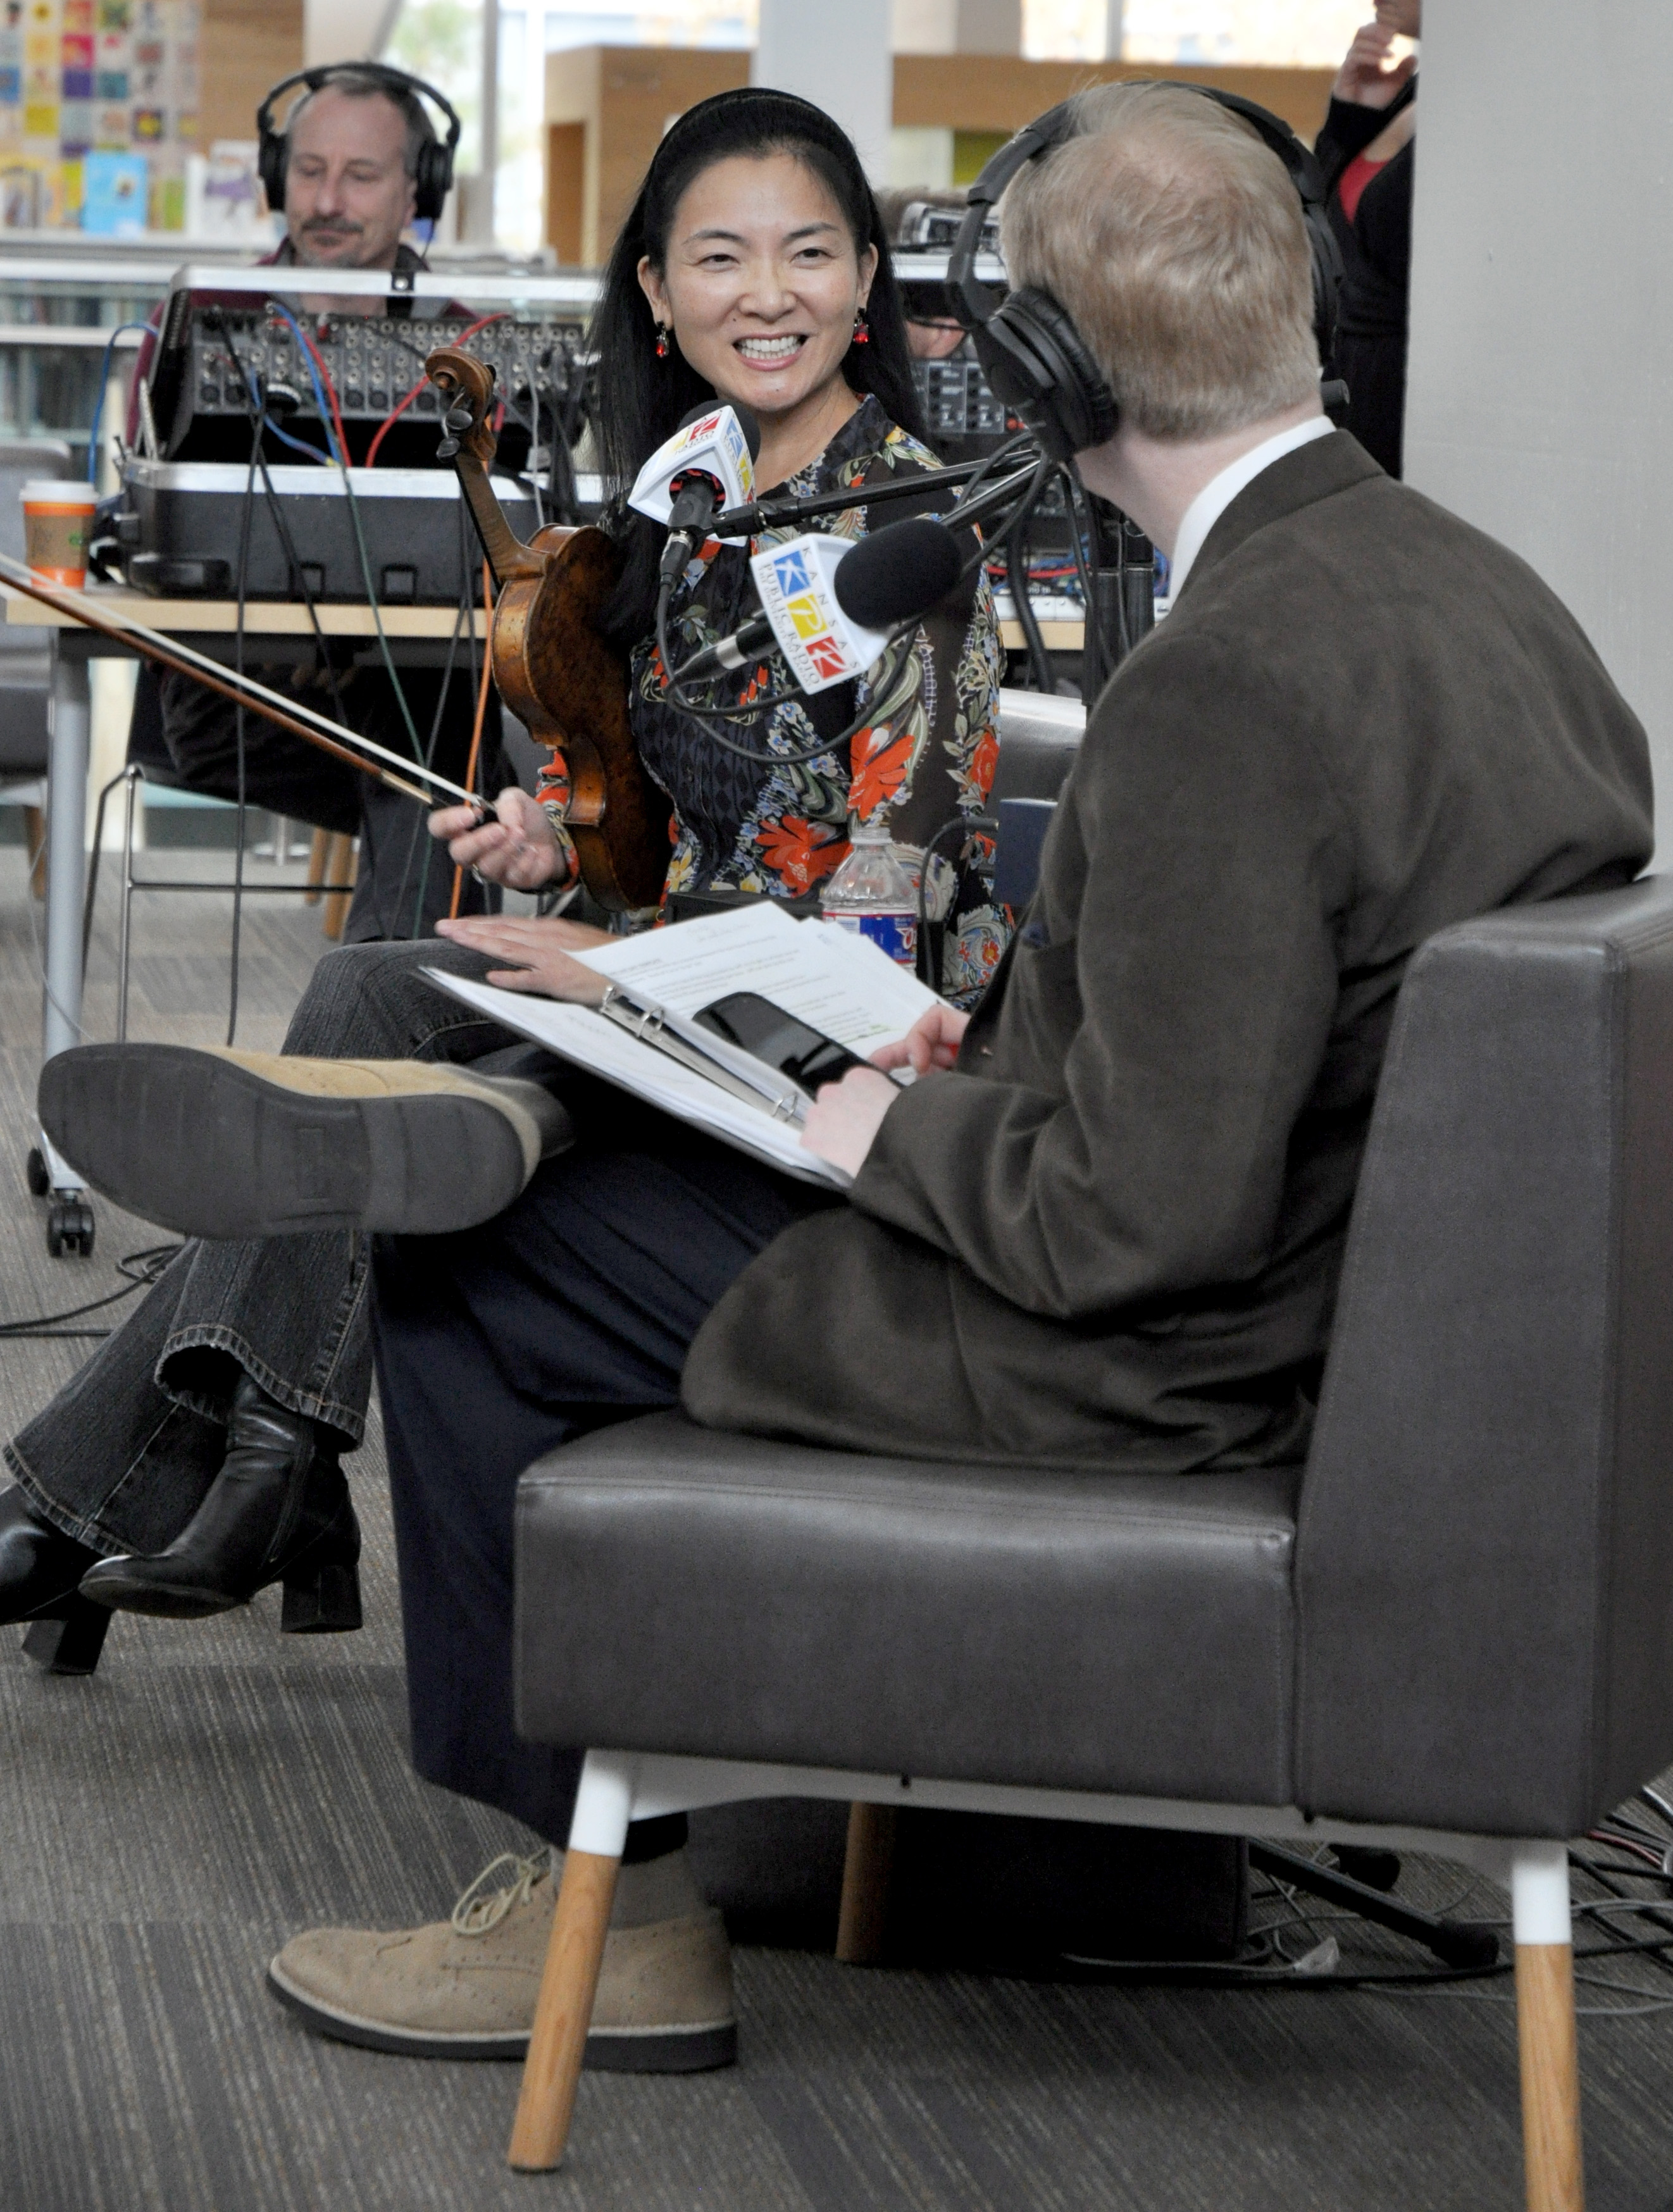 Michael Keelan interviews Elizabeth Suh Lane of the Bach Aria Soloists. Suh Lane is founder-Executive-Artistic Director and violinist of the Bach Aria Soloists.